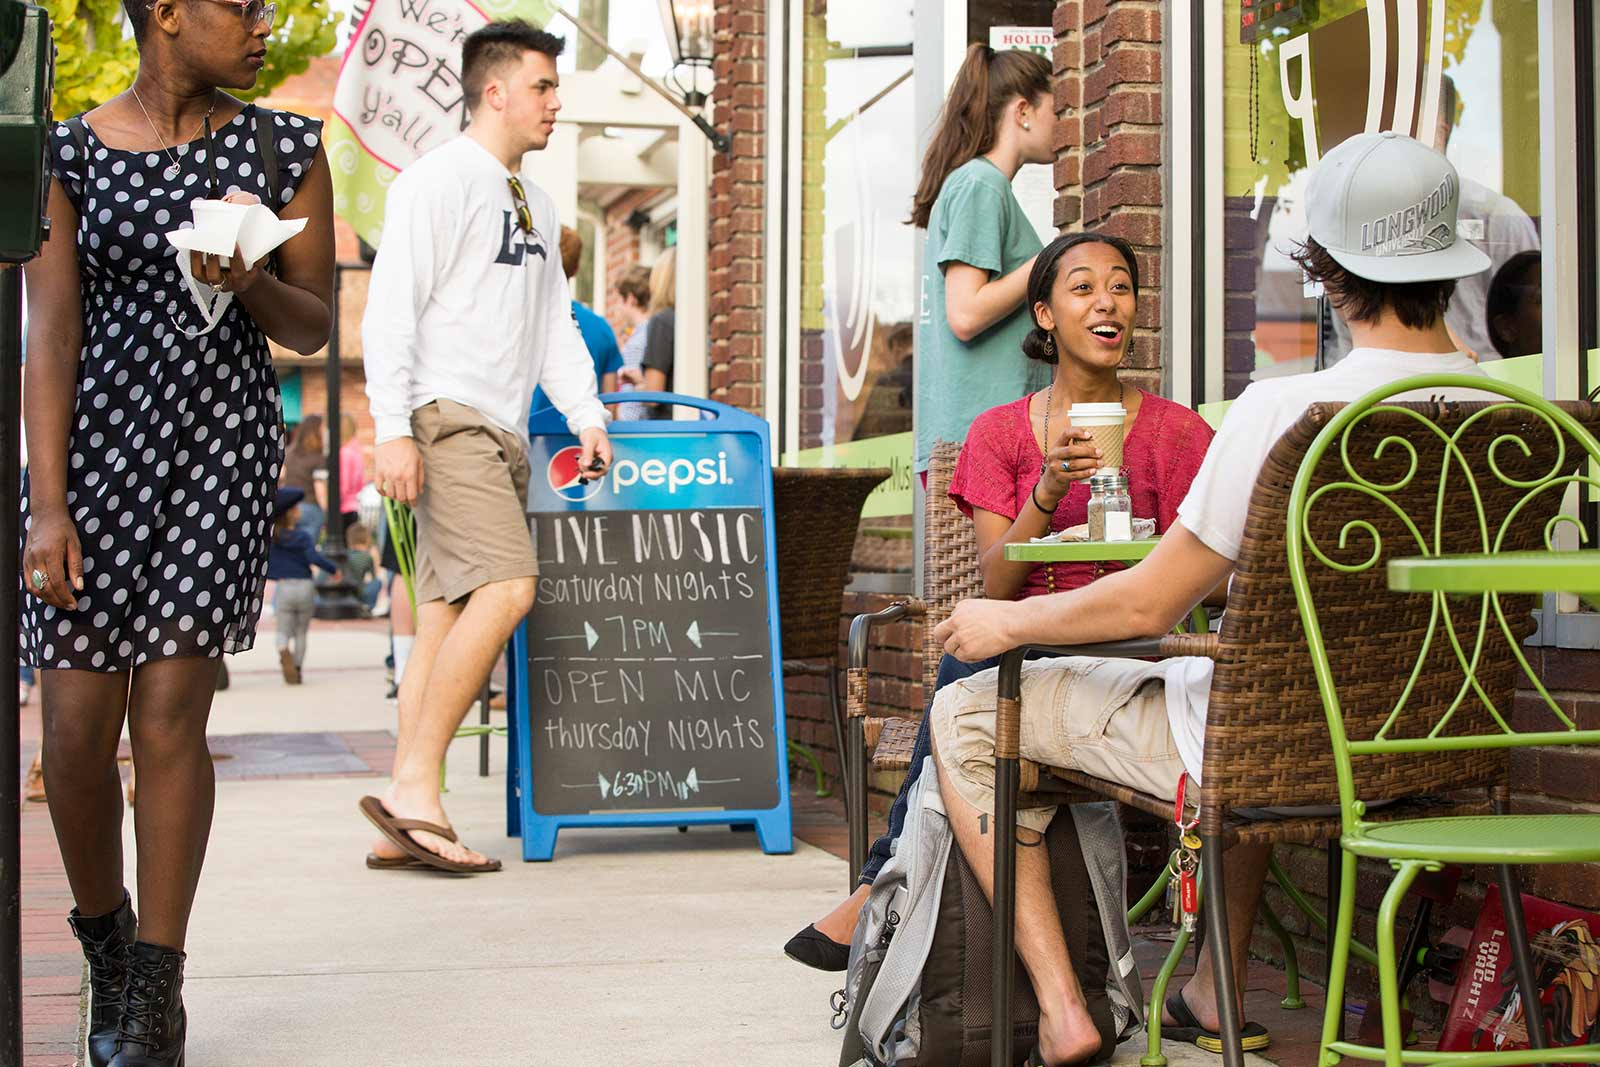 Students are often found hanging out downtown. Farmville's lively Main Street is lined with shops and restaurants, and is home to the University Bookstore.